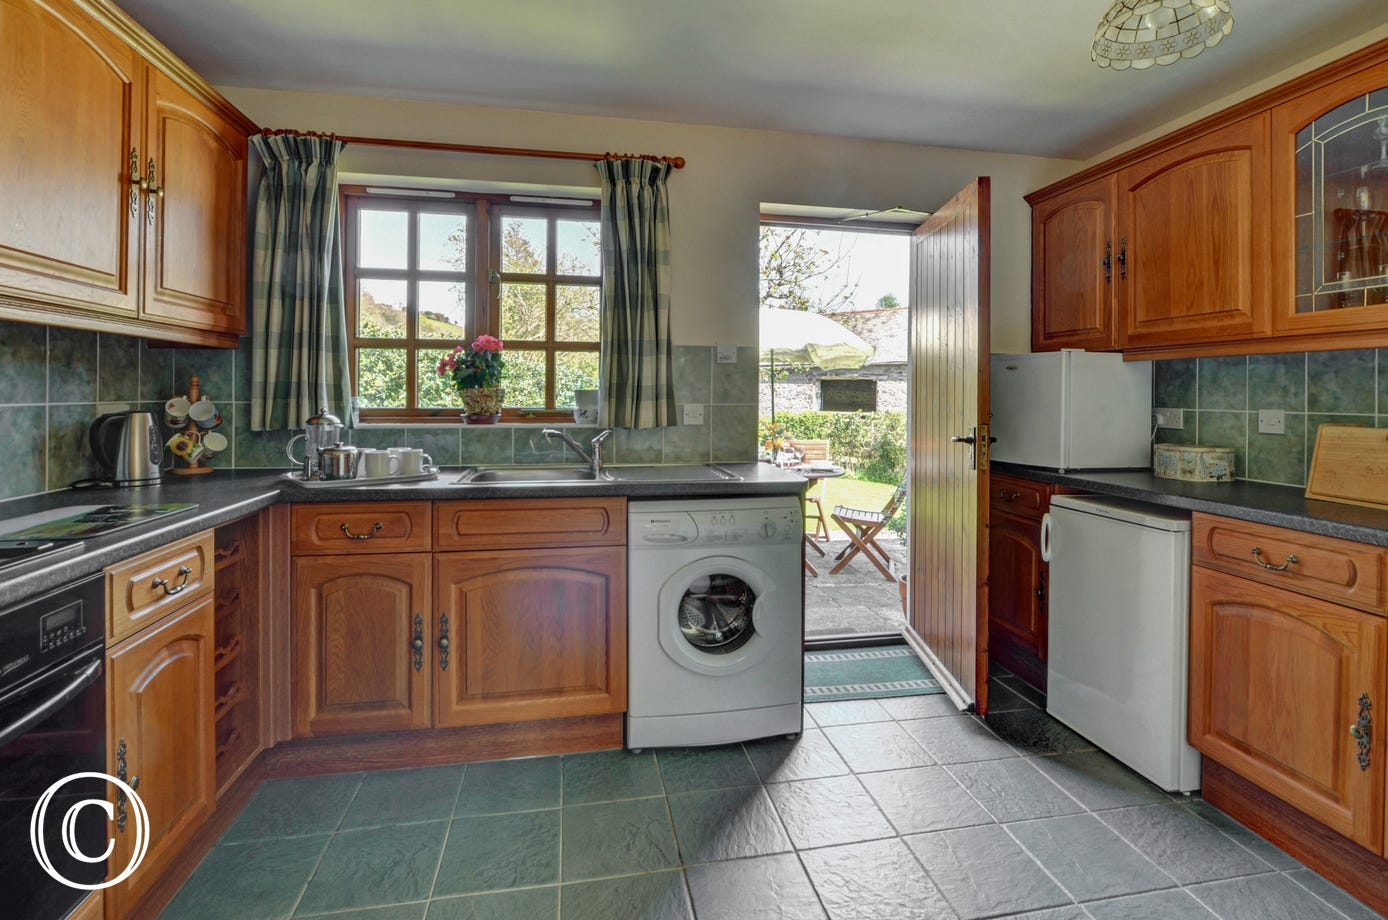 The modern fitted kitchen is well equipped and has a door leading out to the pretty garden